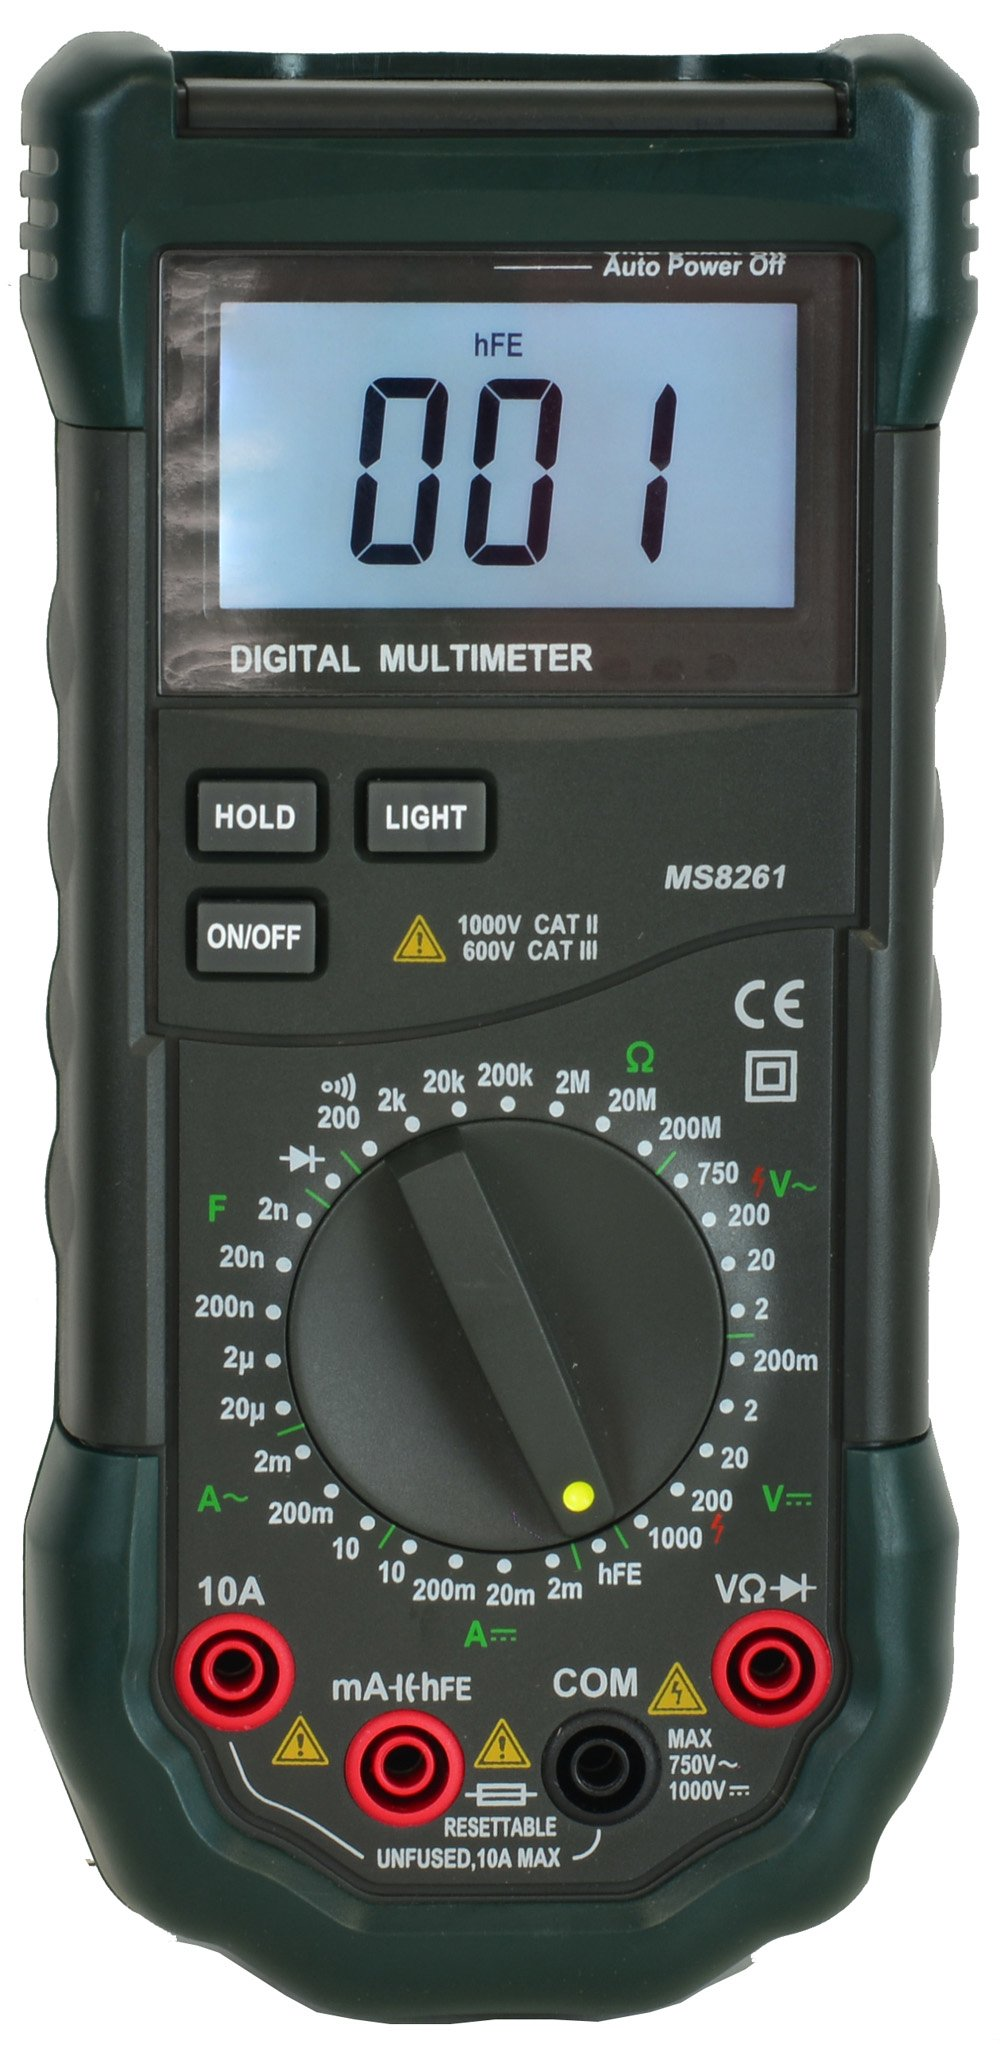 Mastech MS8261 Full Feartured Digital Multimeter with Temperature and Capacitance Measurement